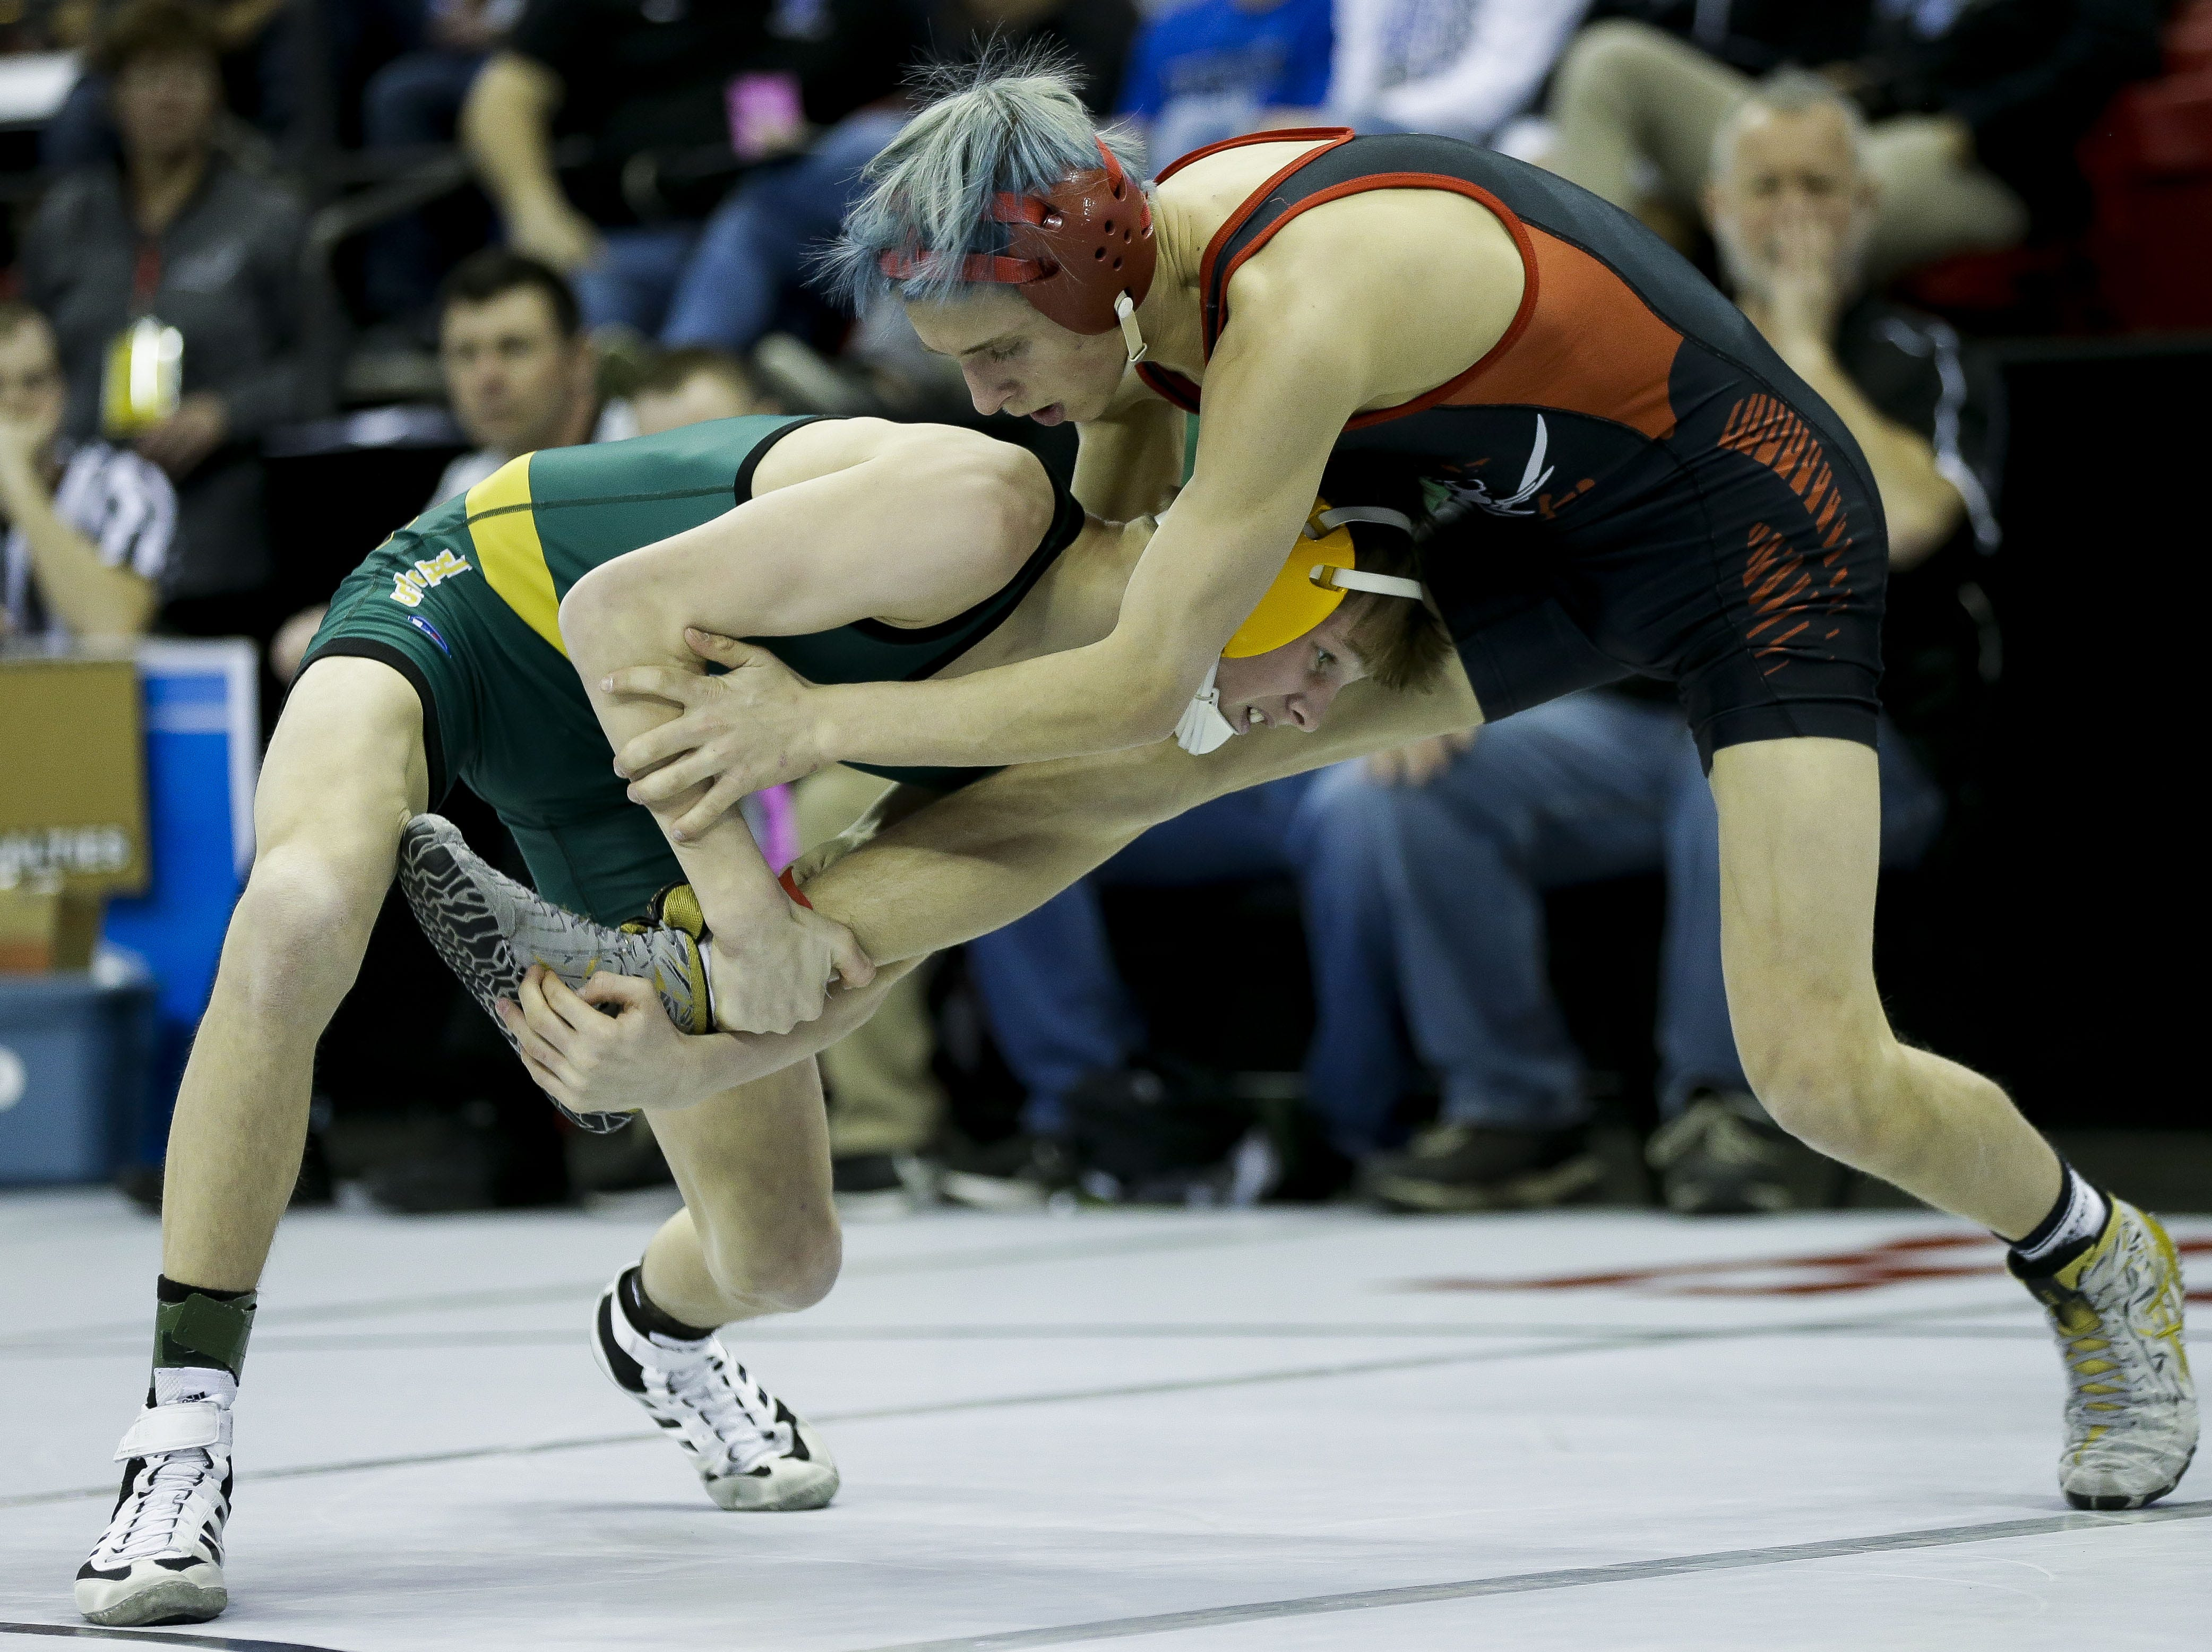 Ashwaubenon's Cody Minor takes down Pewaukee's Rece Czerniejewski in a Division 1 113-pound preliminary match during the WIAA state wrestling tournament on Thursday, February 21, 2019, at the Kohl Center in Madison, Wis. Tork Mason/USA TODAY NETWORK-Wisconsin